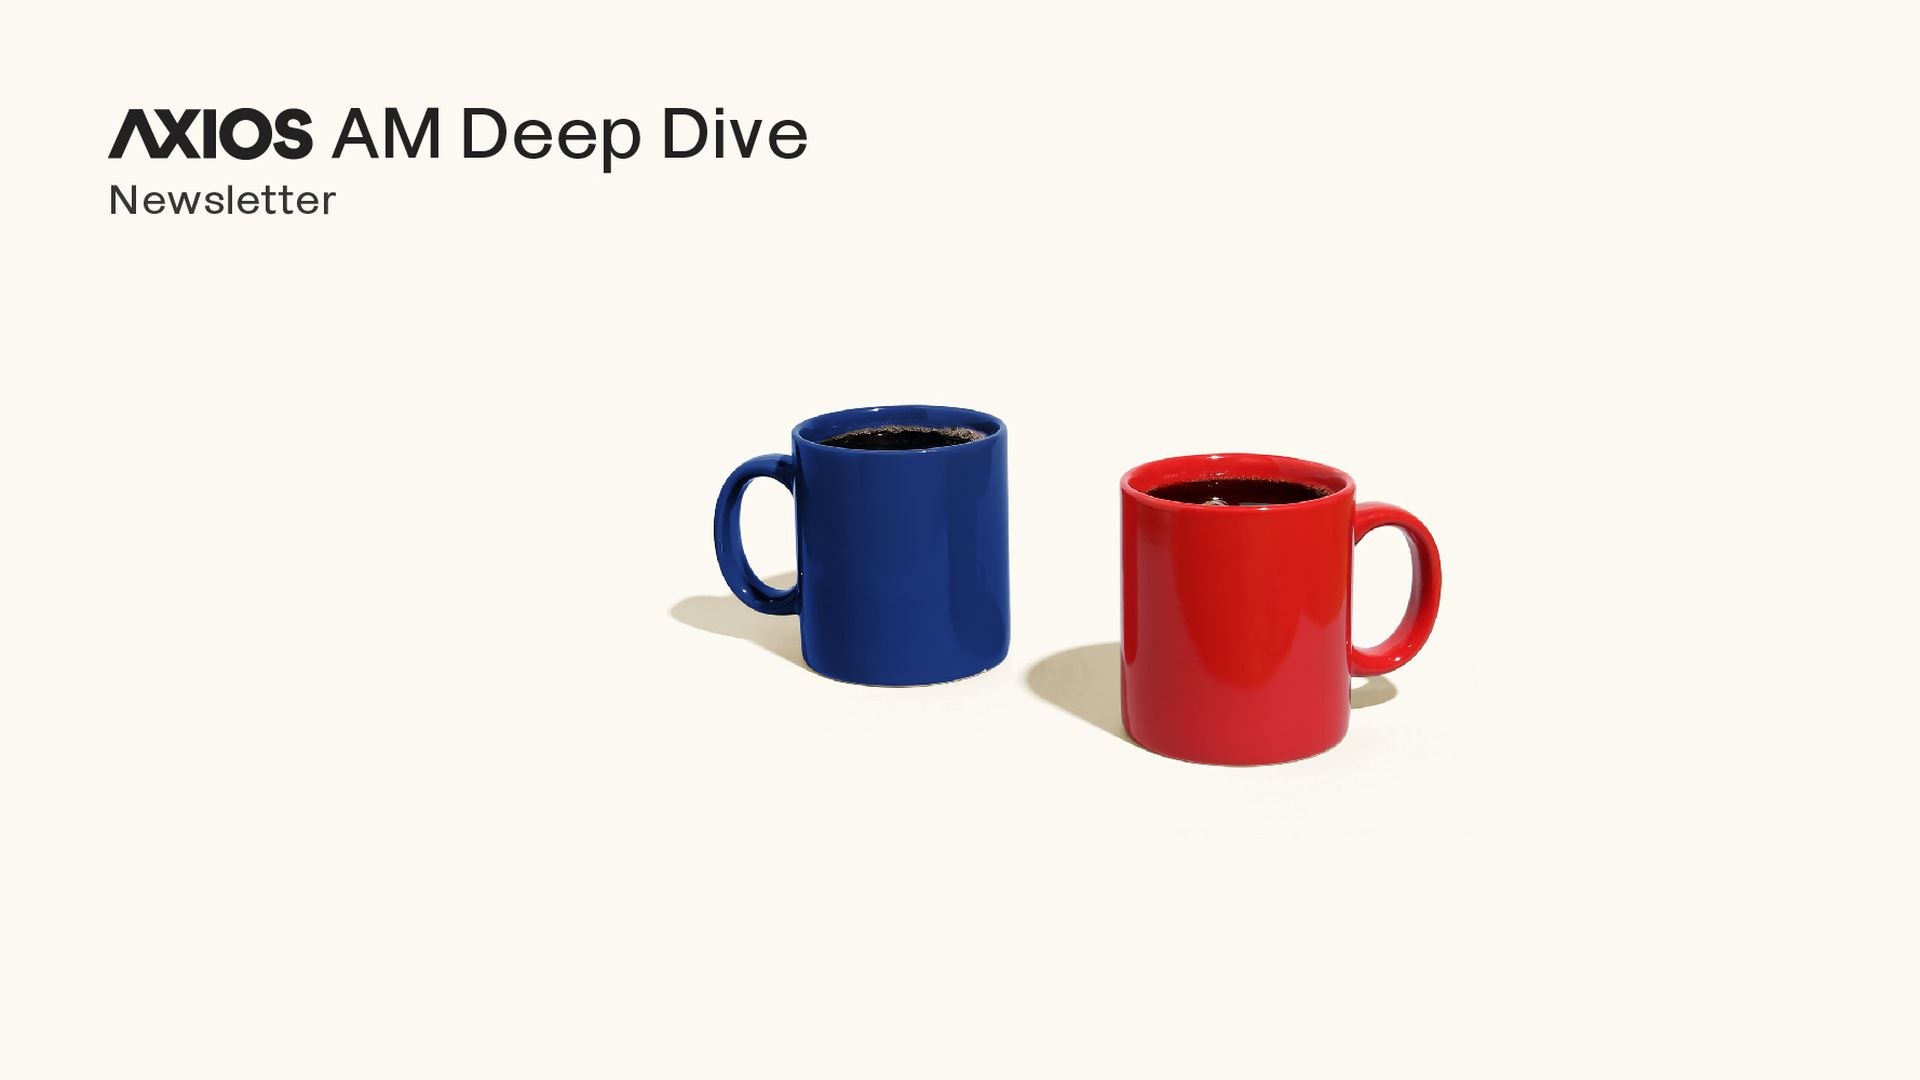 Axios AM Deep Dive